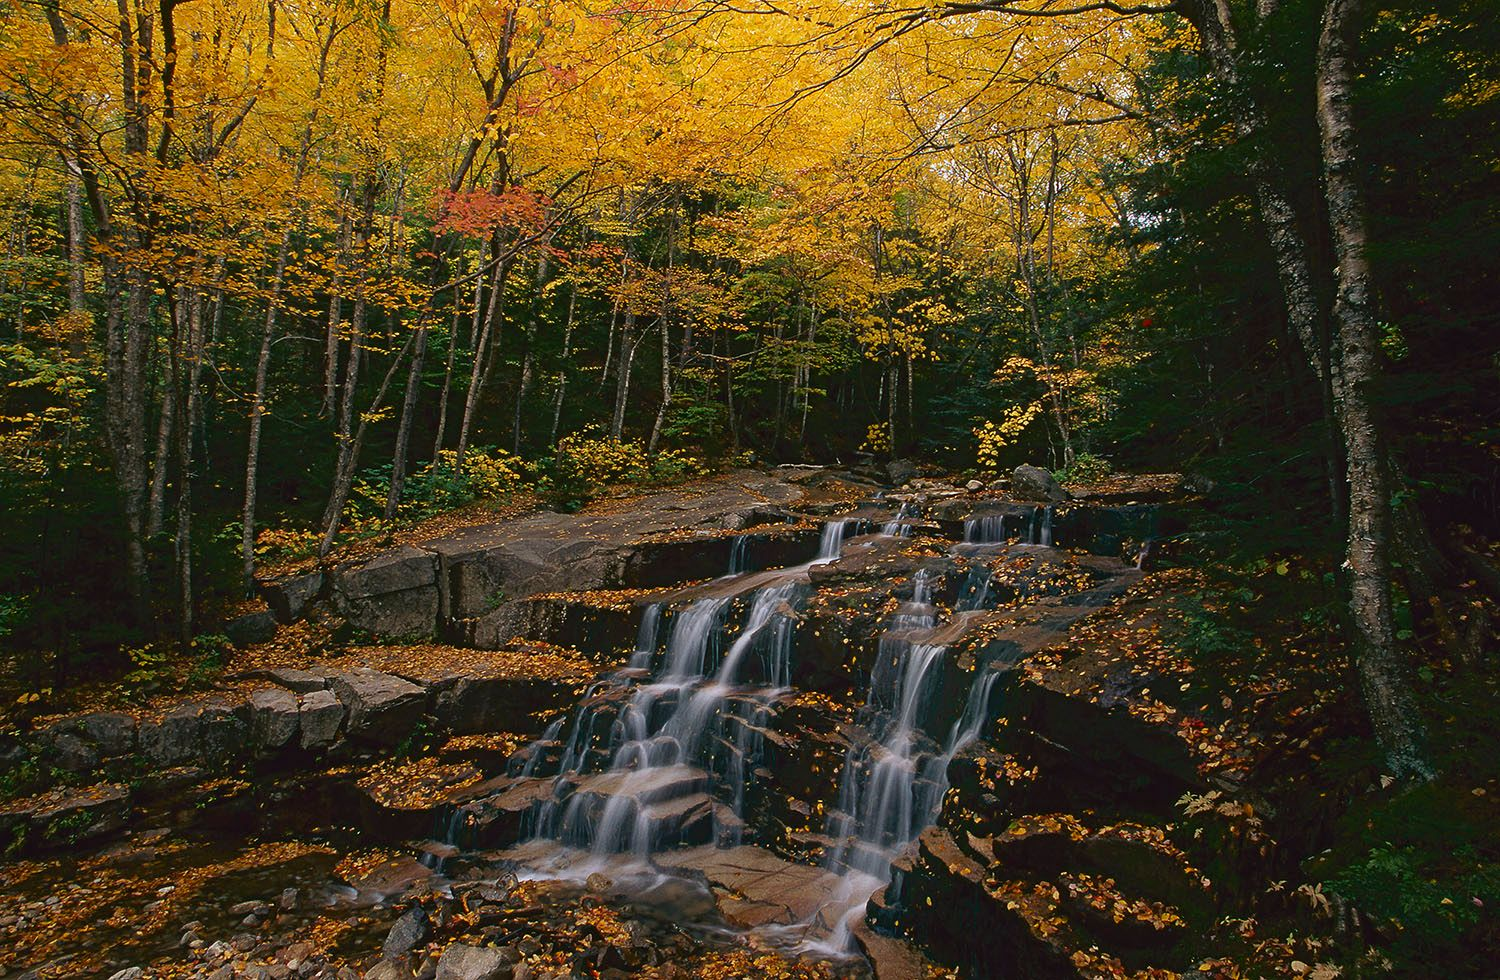 Waterfall in the White Mountains National Forest